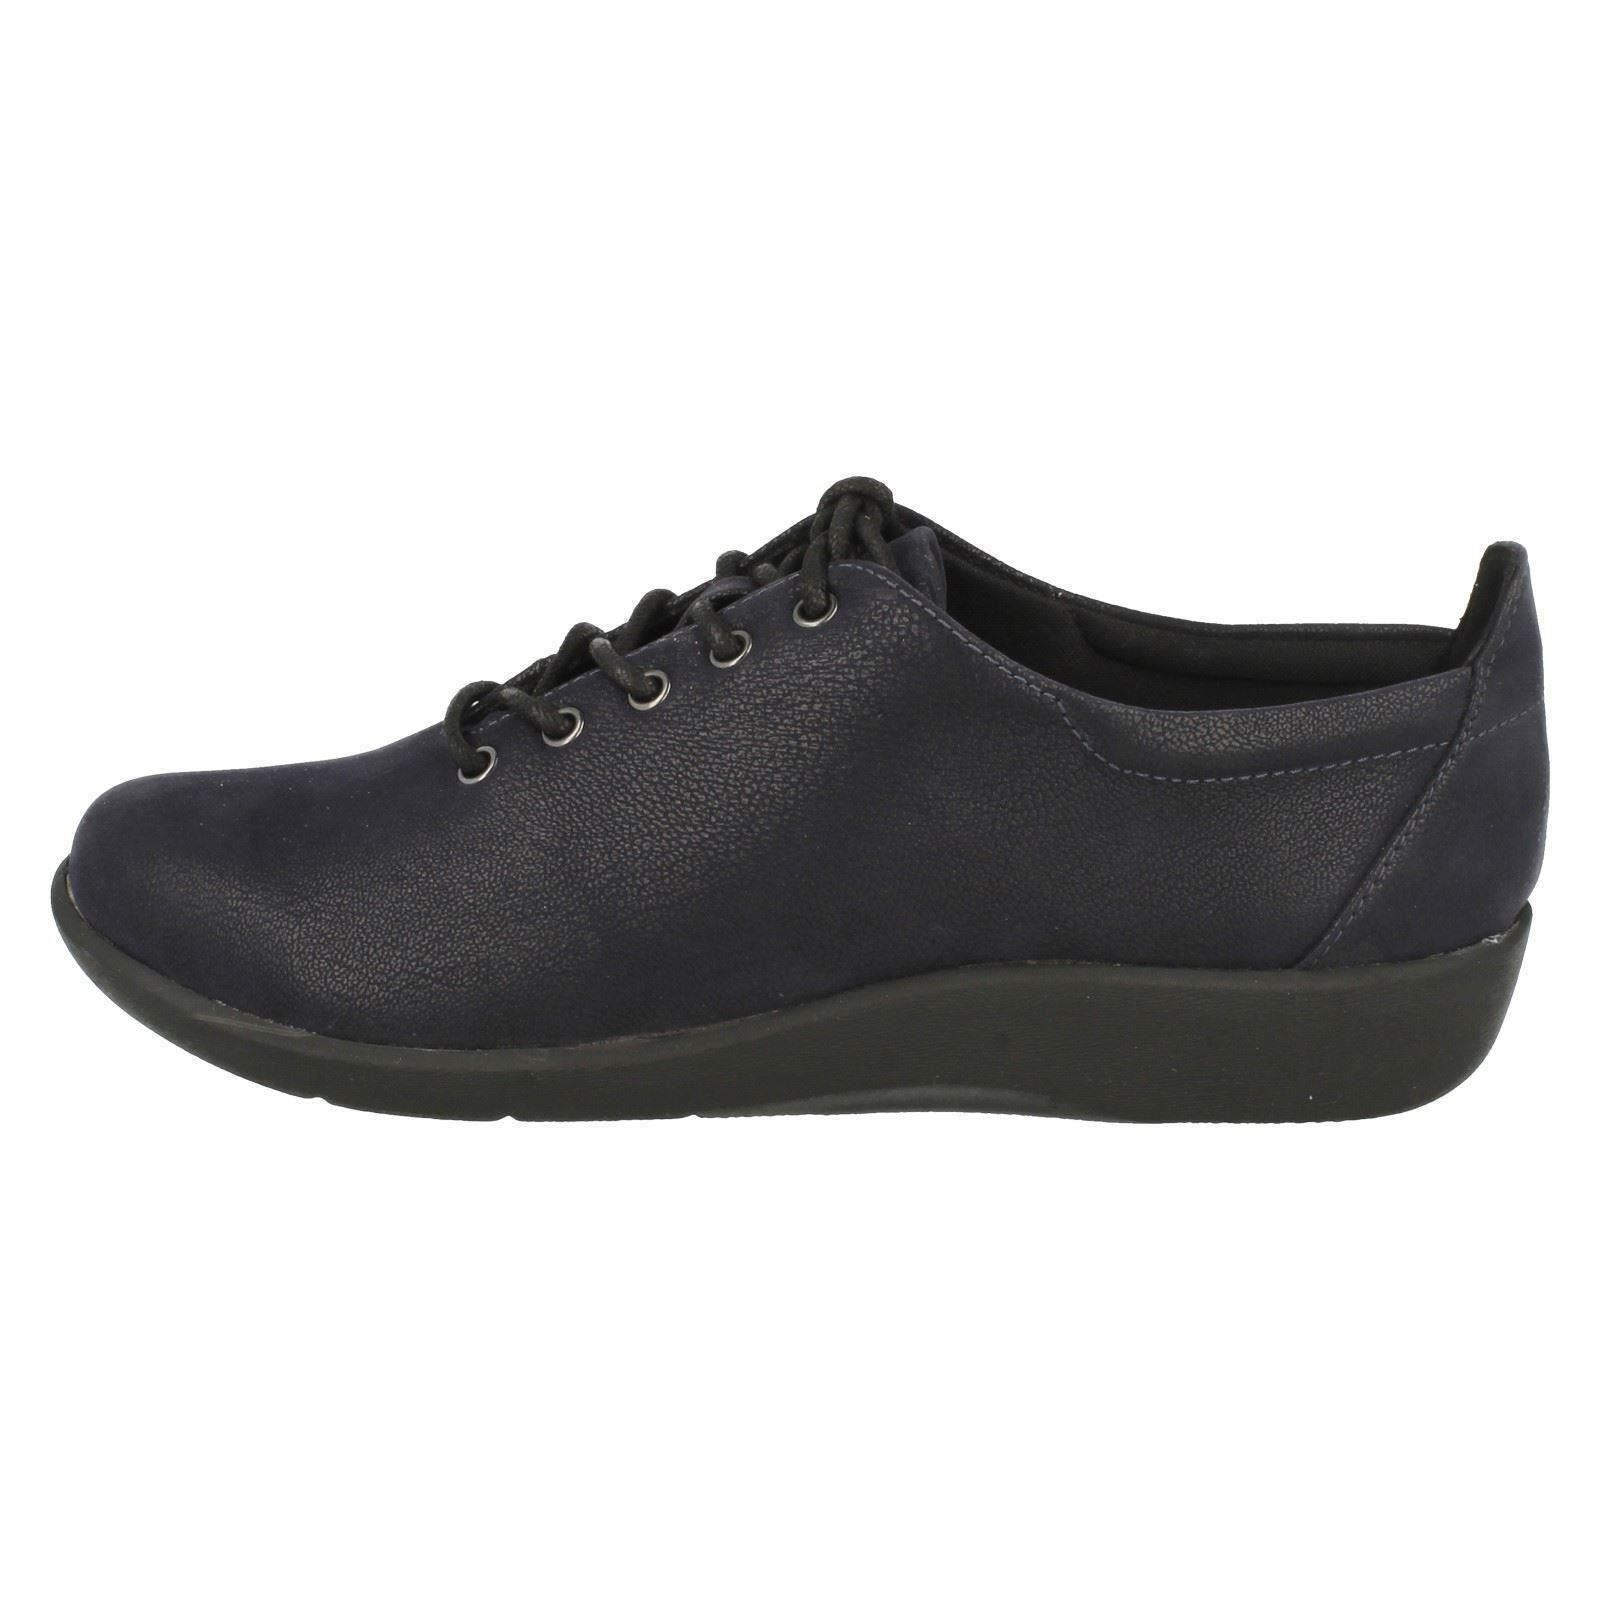 Clarks Sillian Tino Shoes